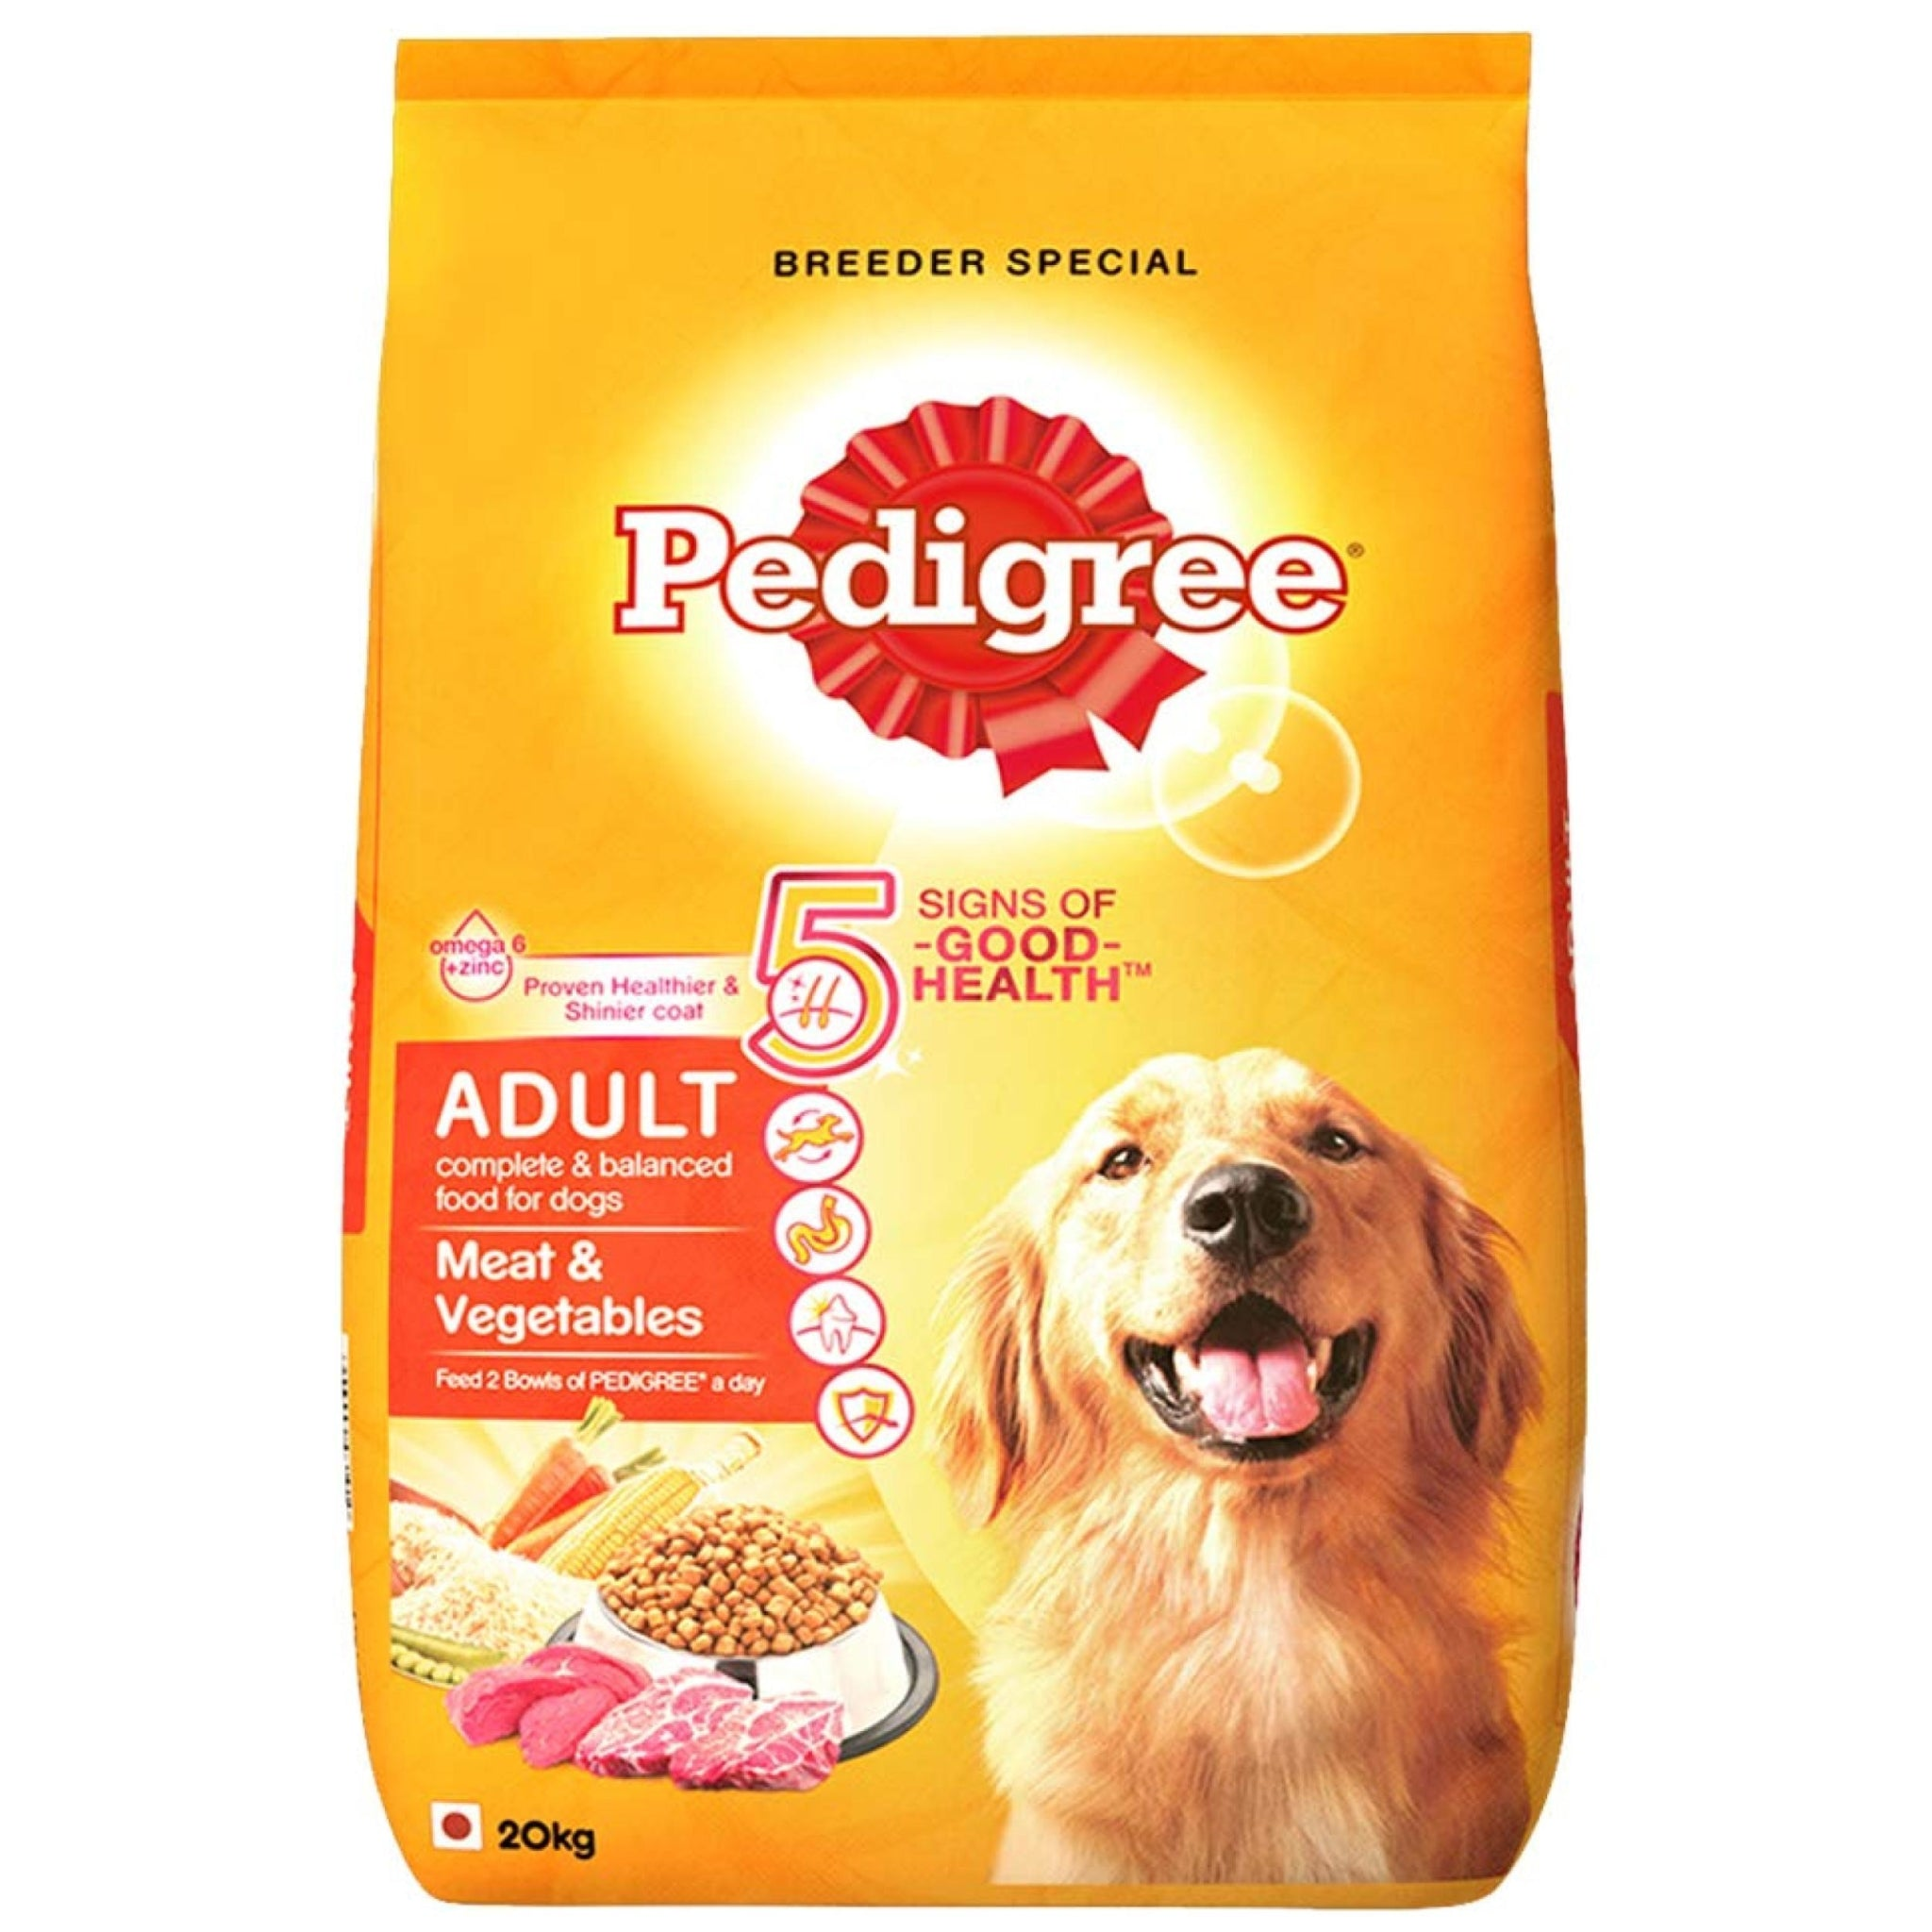 Pedigree Meat And Vegetable Adult Dog Food - 20 Kgs - Poochles